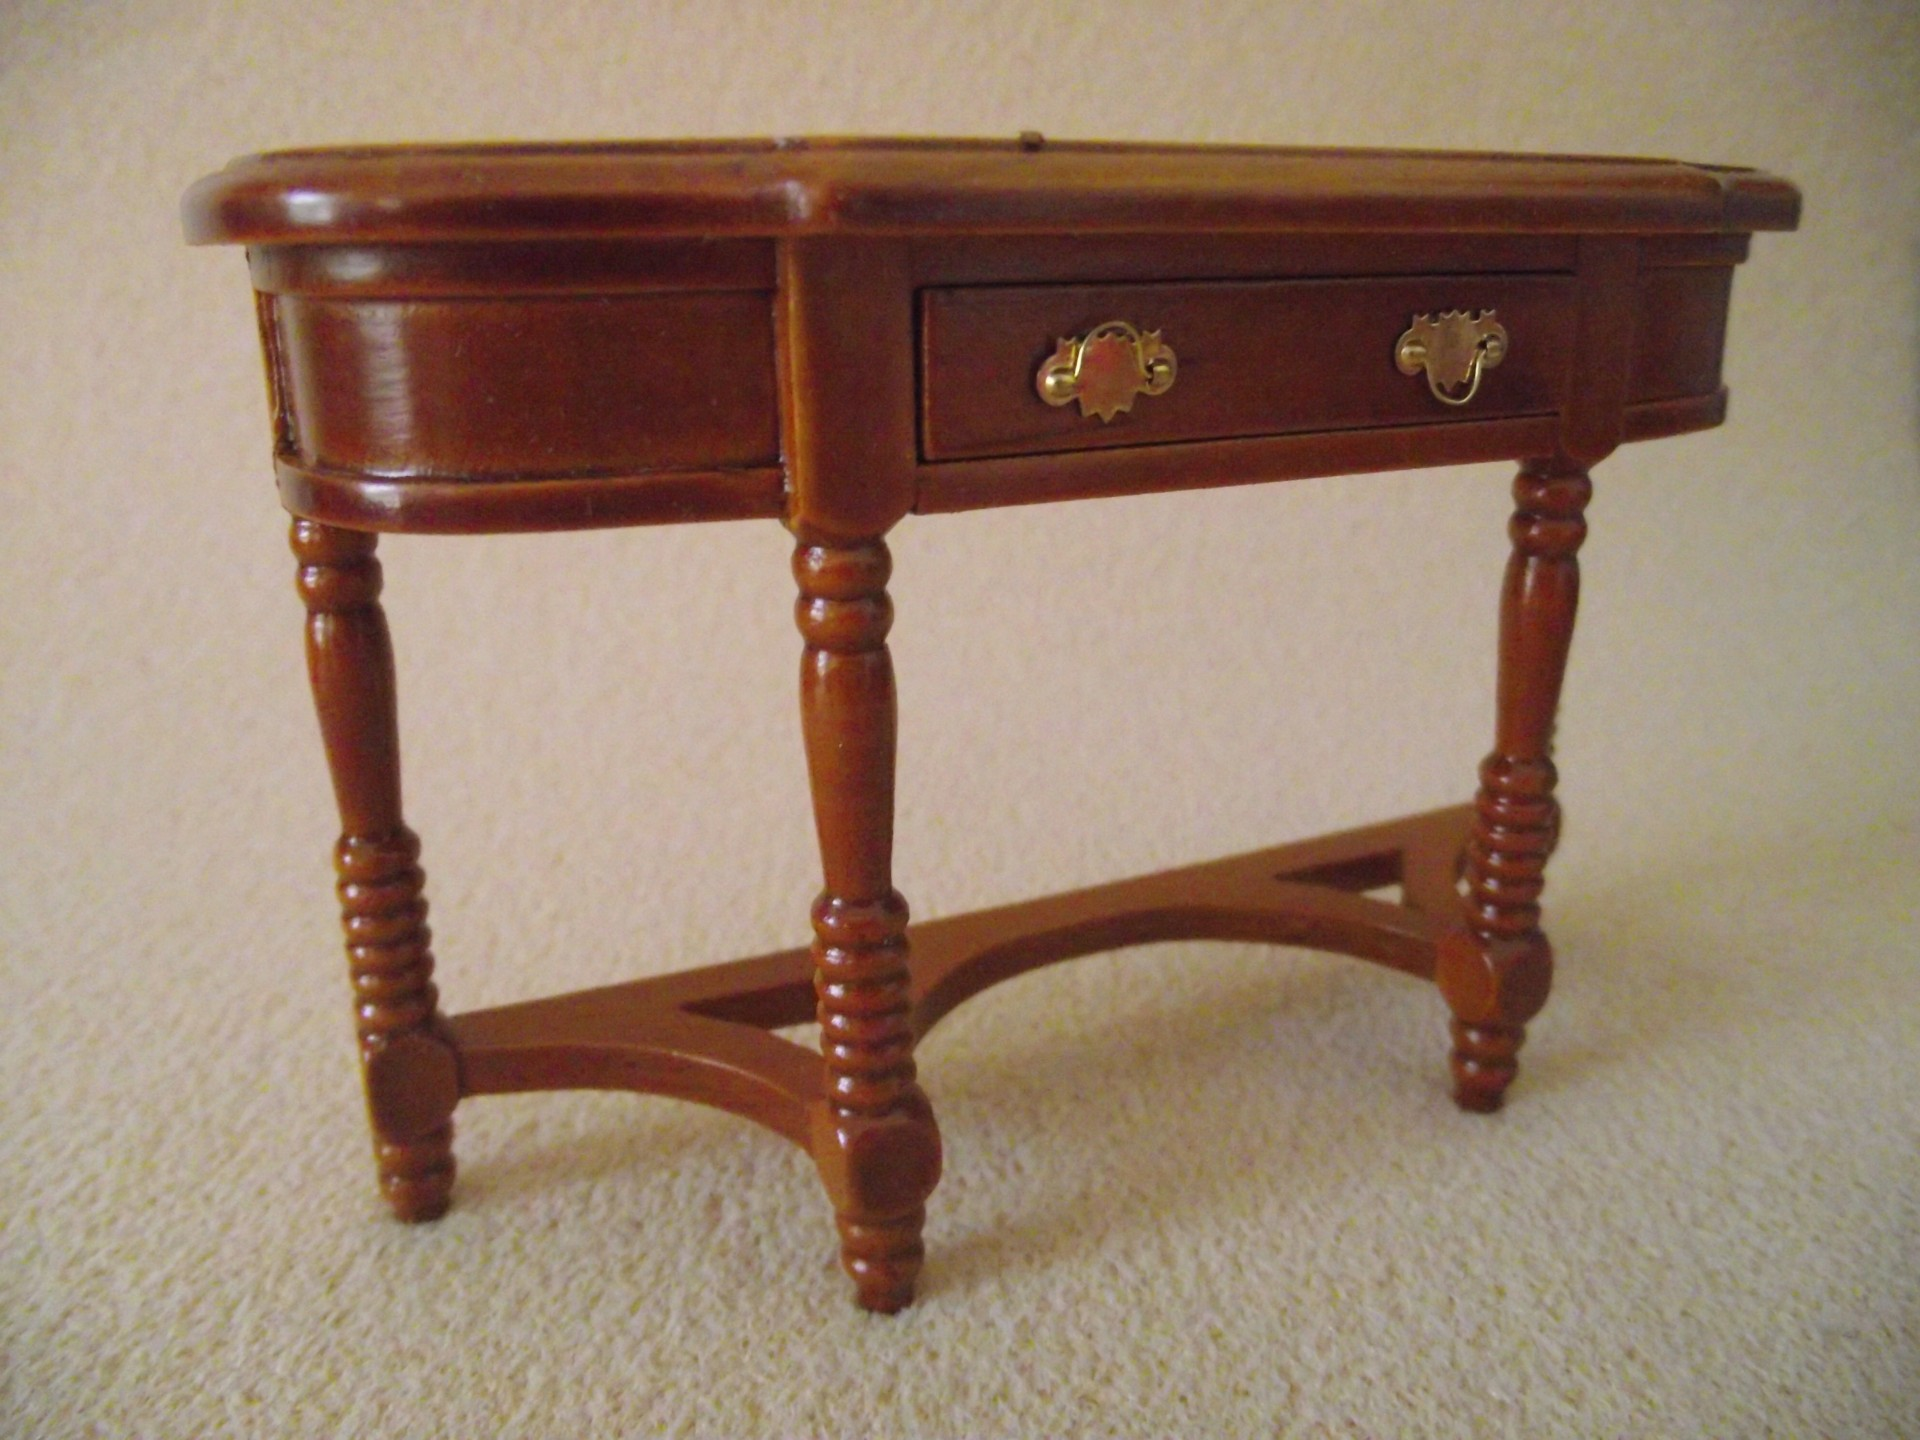 Miniature Doll House 12th Scale Dark Wooden Furniture Hall Table Cabinet 0008 Ebay